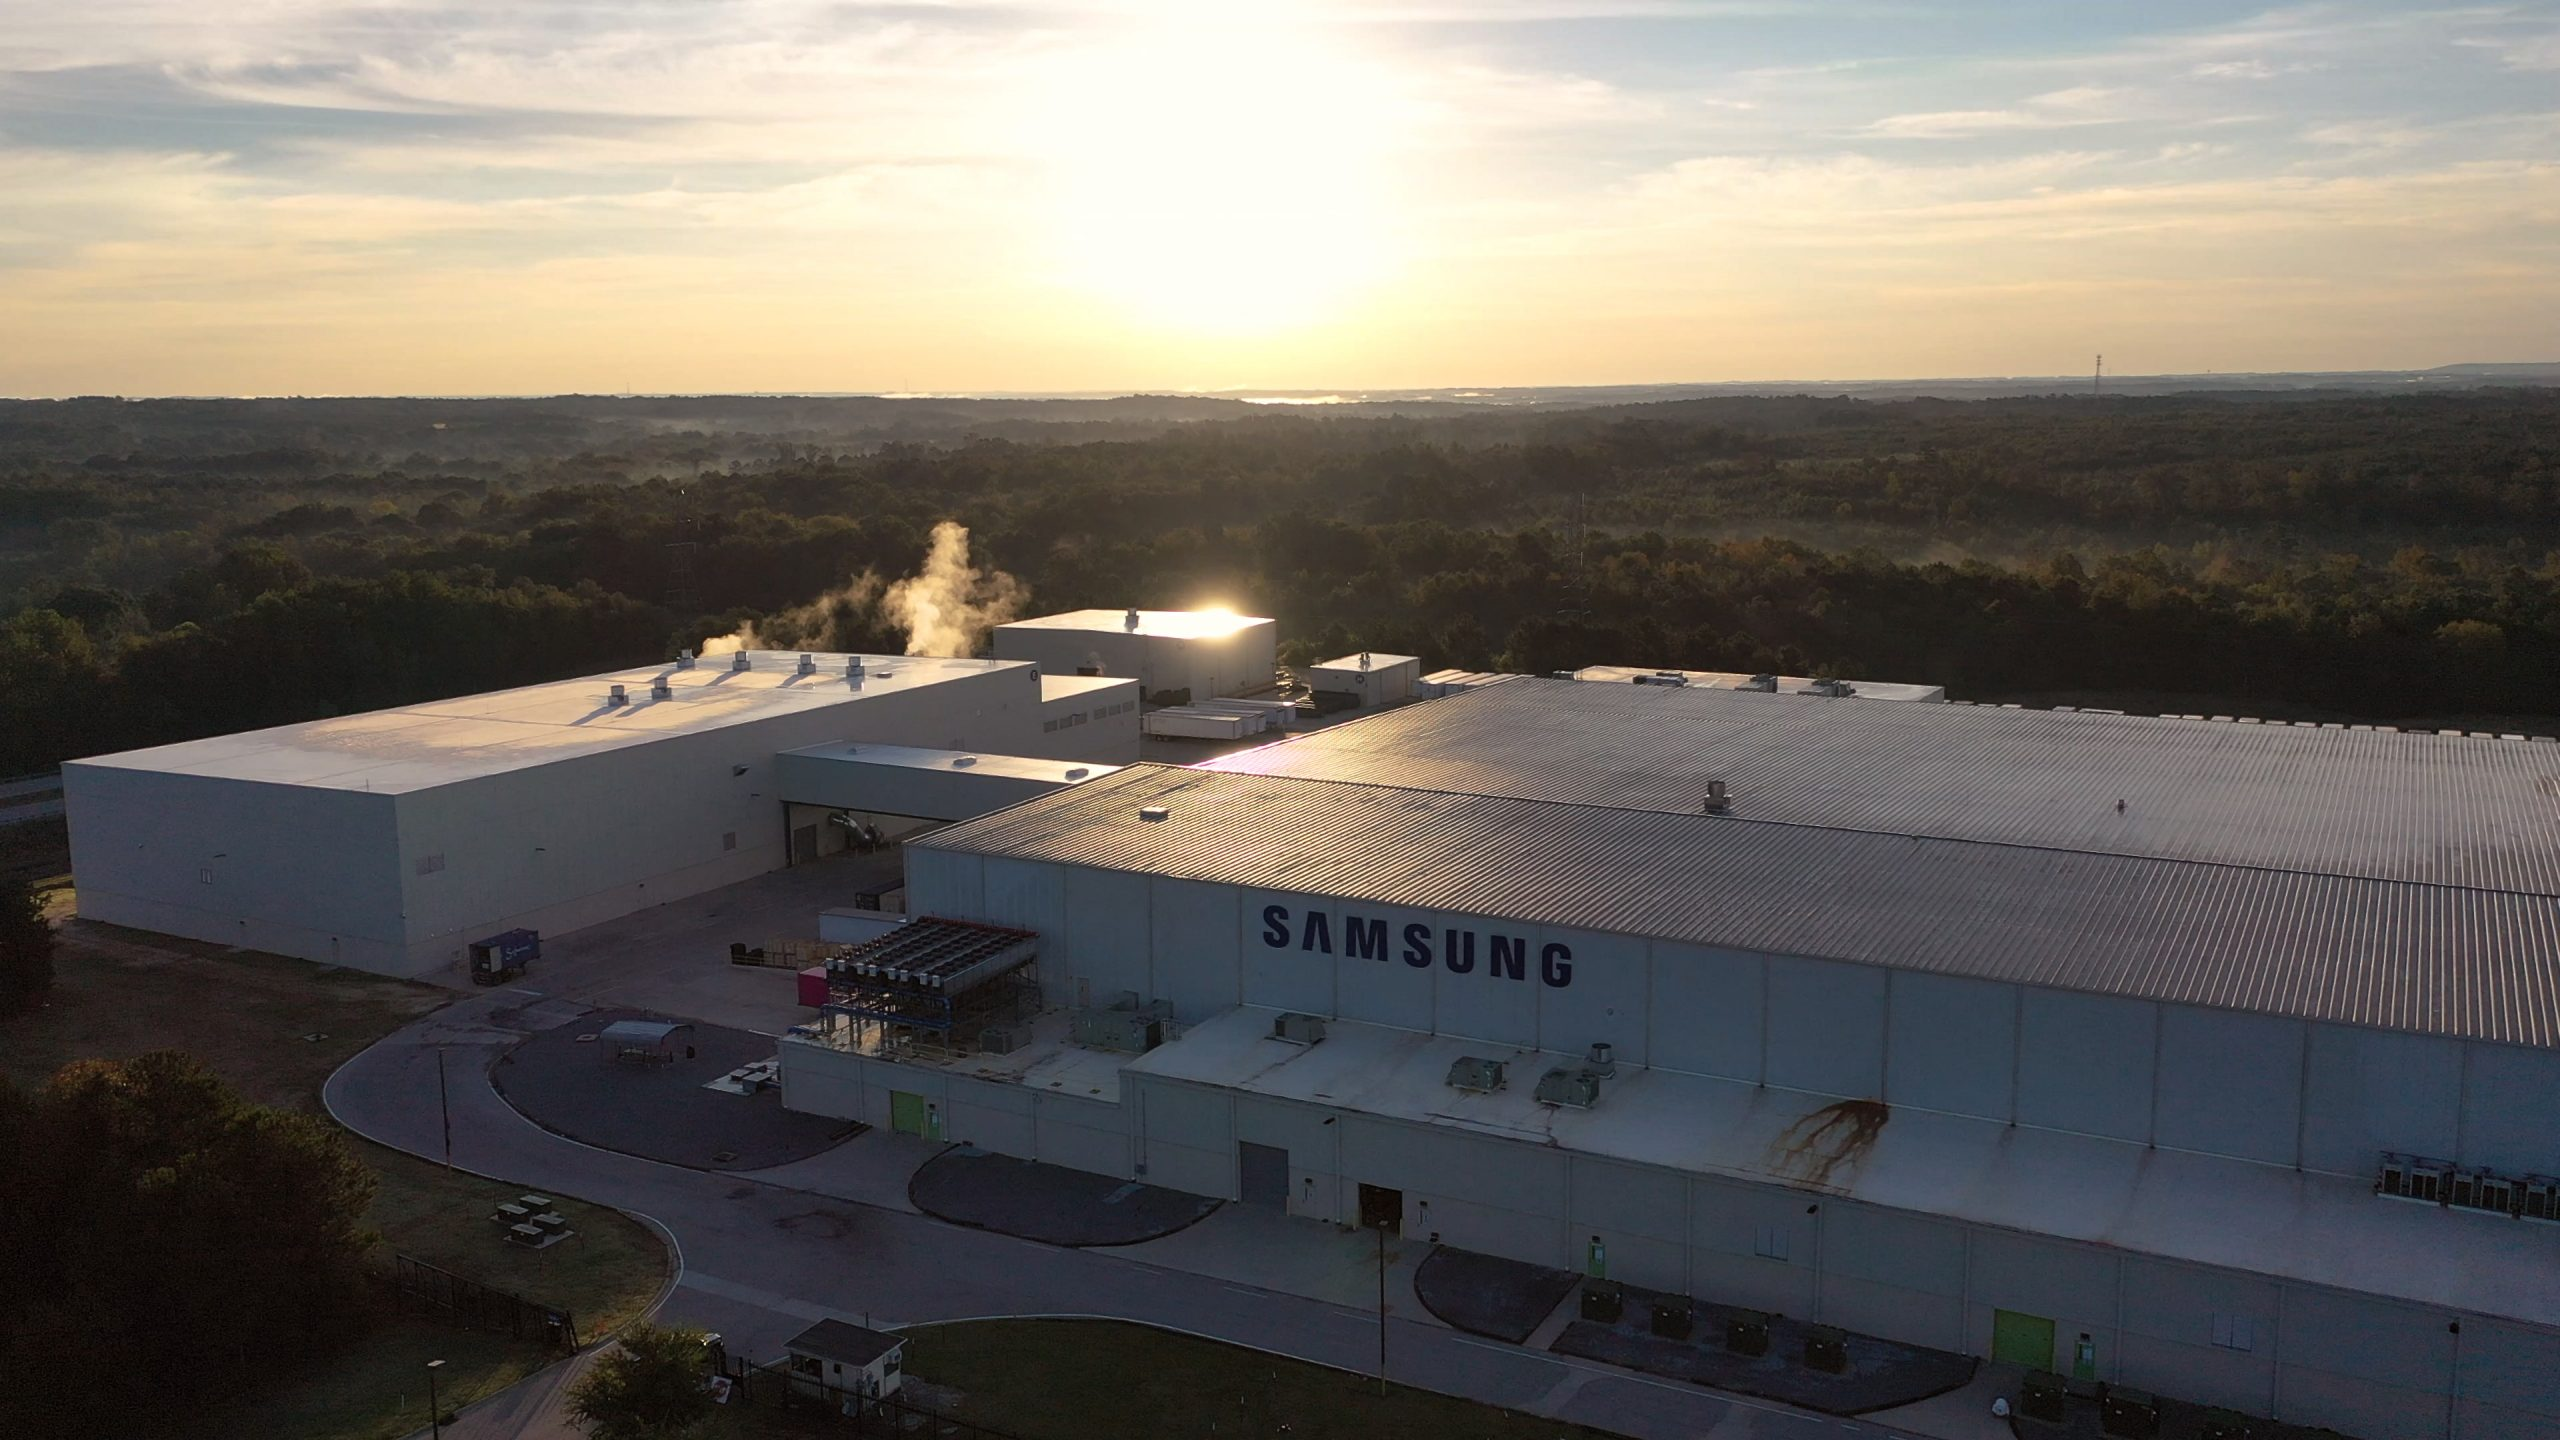 Samsung Home Appliances Manufacturing Facility (SEHA)